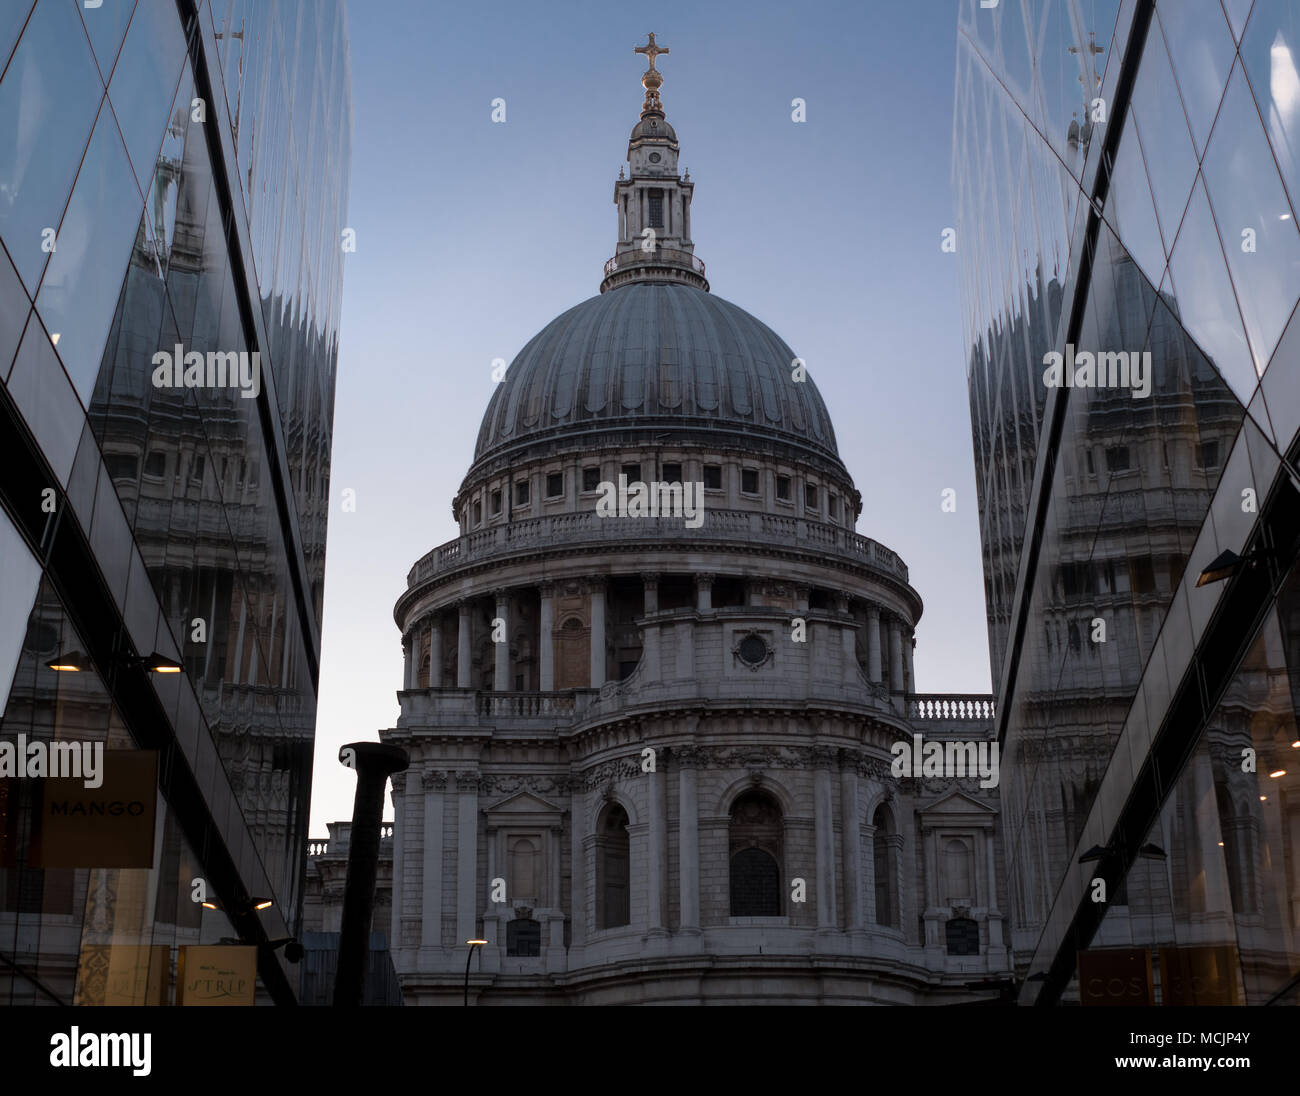 View of the dome of St Paul's Cathedral. Photographed at Blue Hour from One New Change, London UK - Stock Image